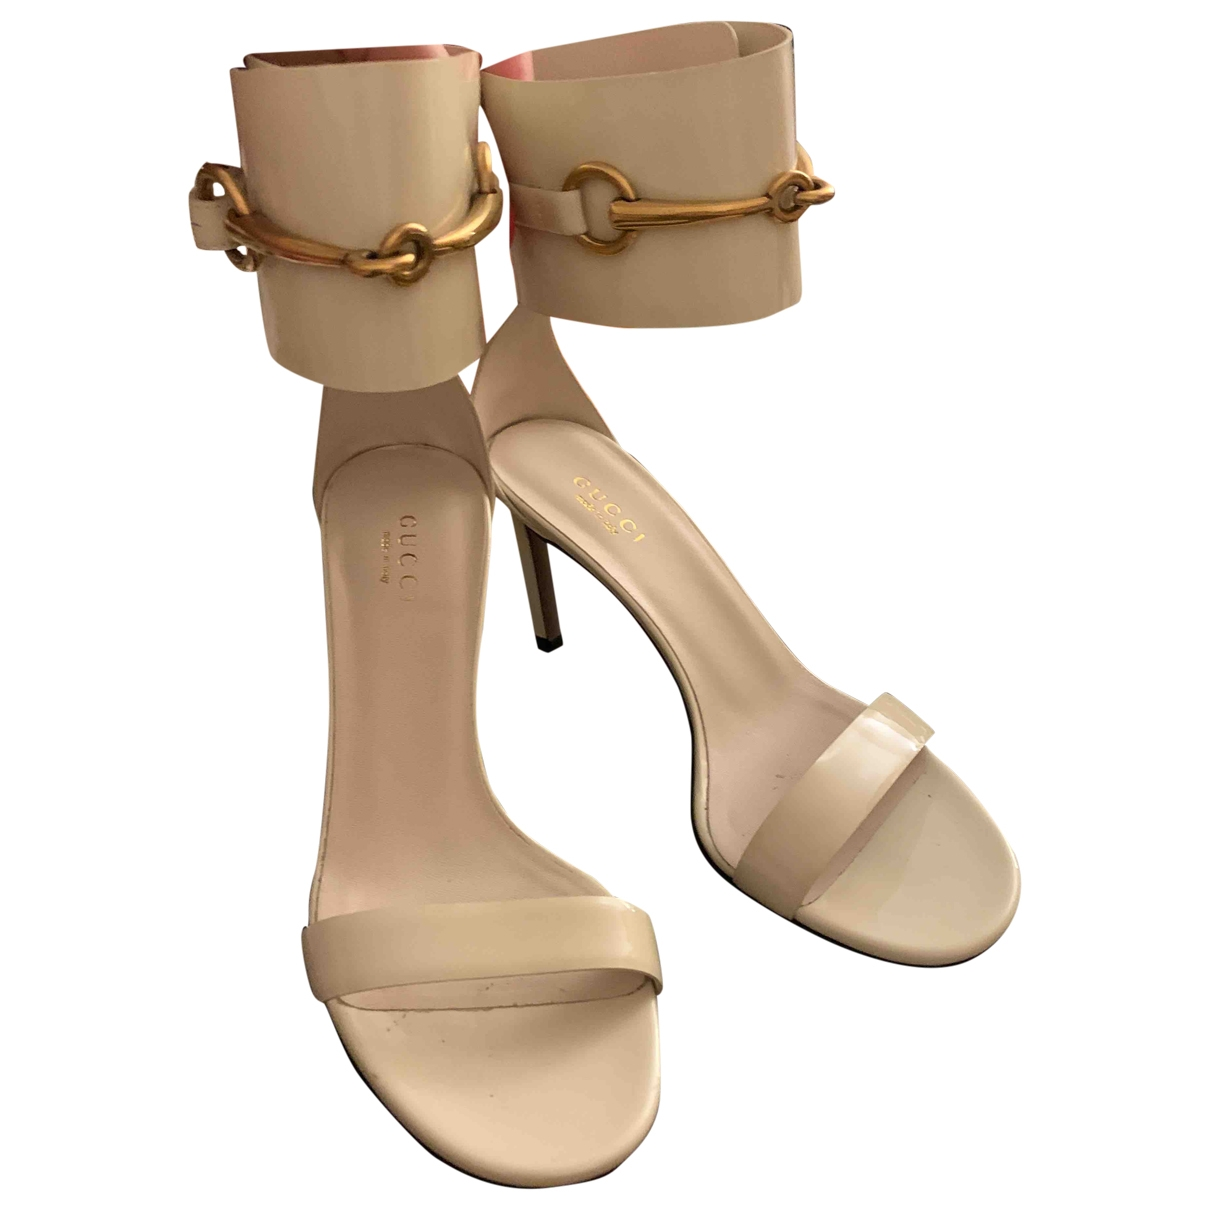 Gucci \N Beige Patent leather Sandals for Women 35 EU